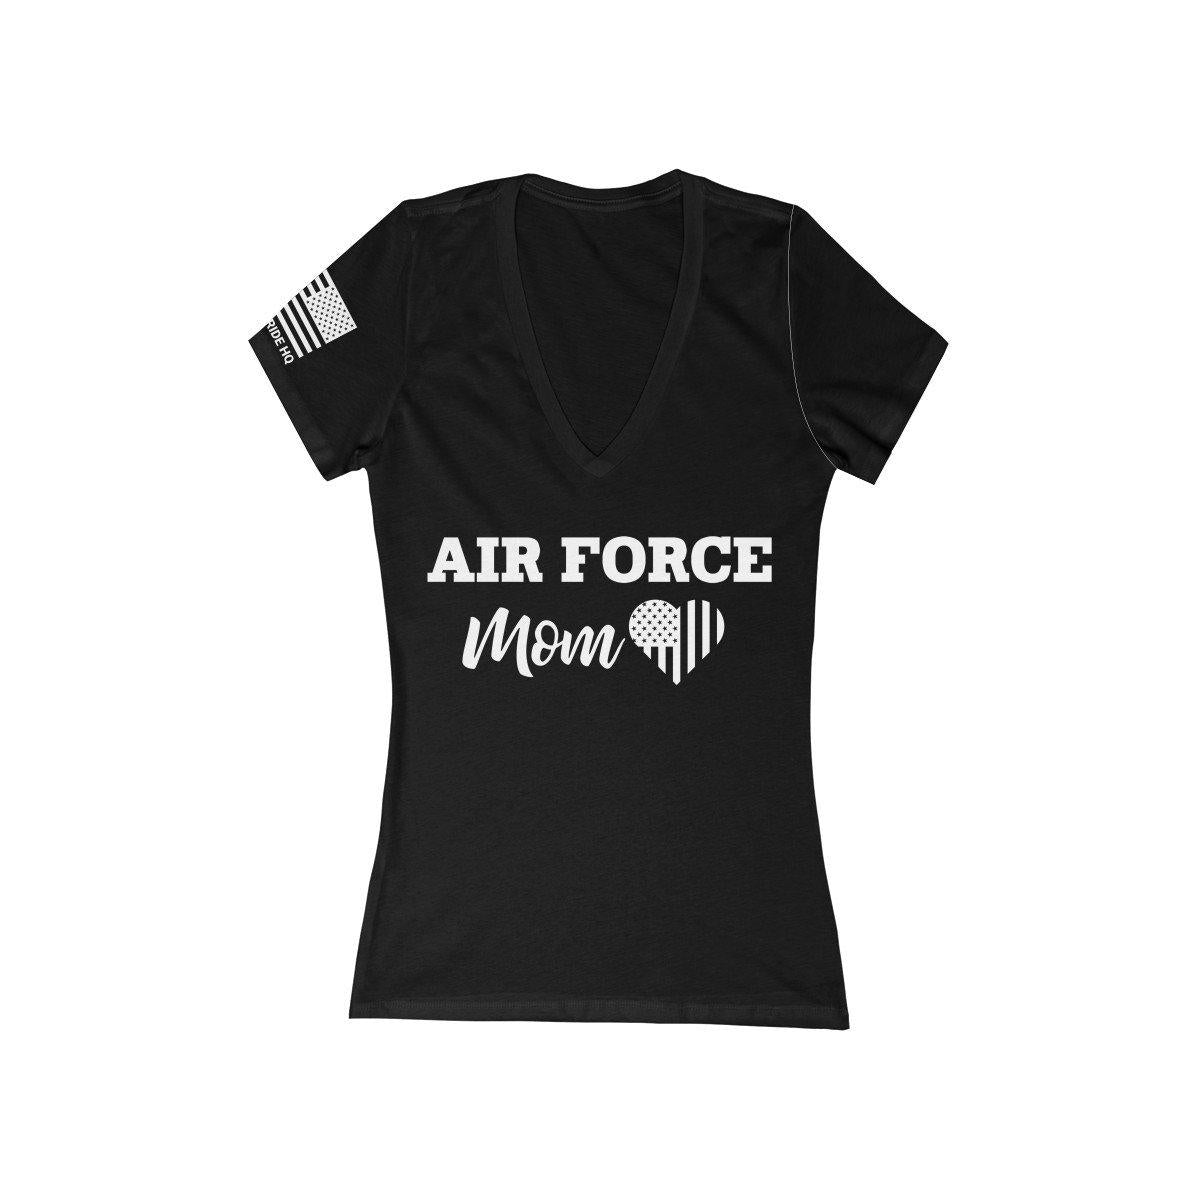 Air Force Mom Women's V-Neck Tee